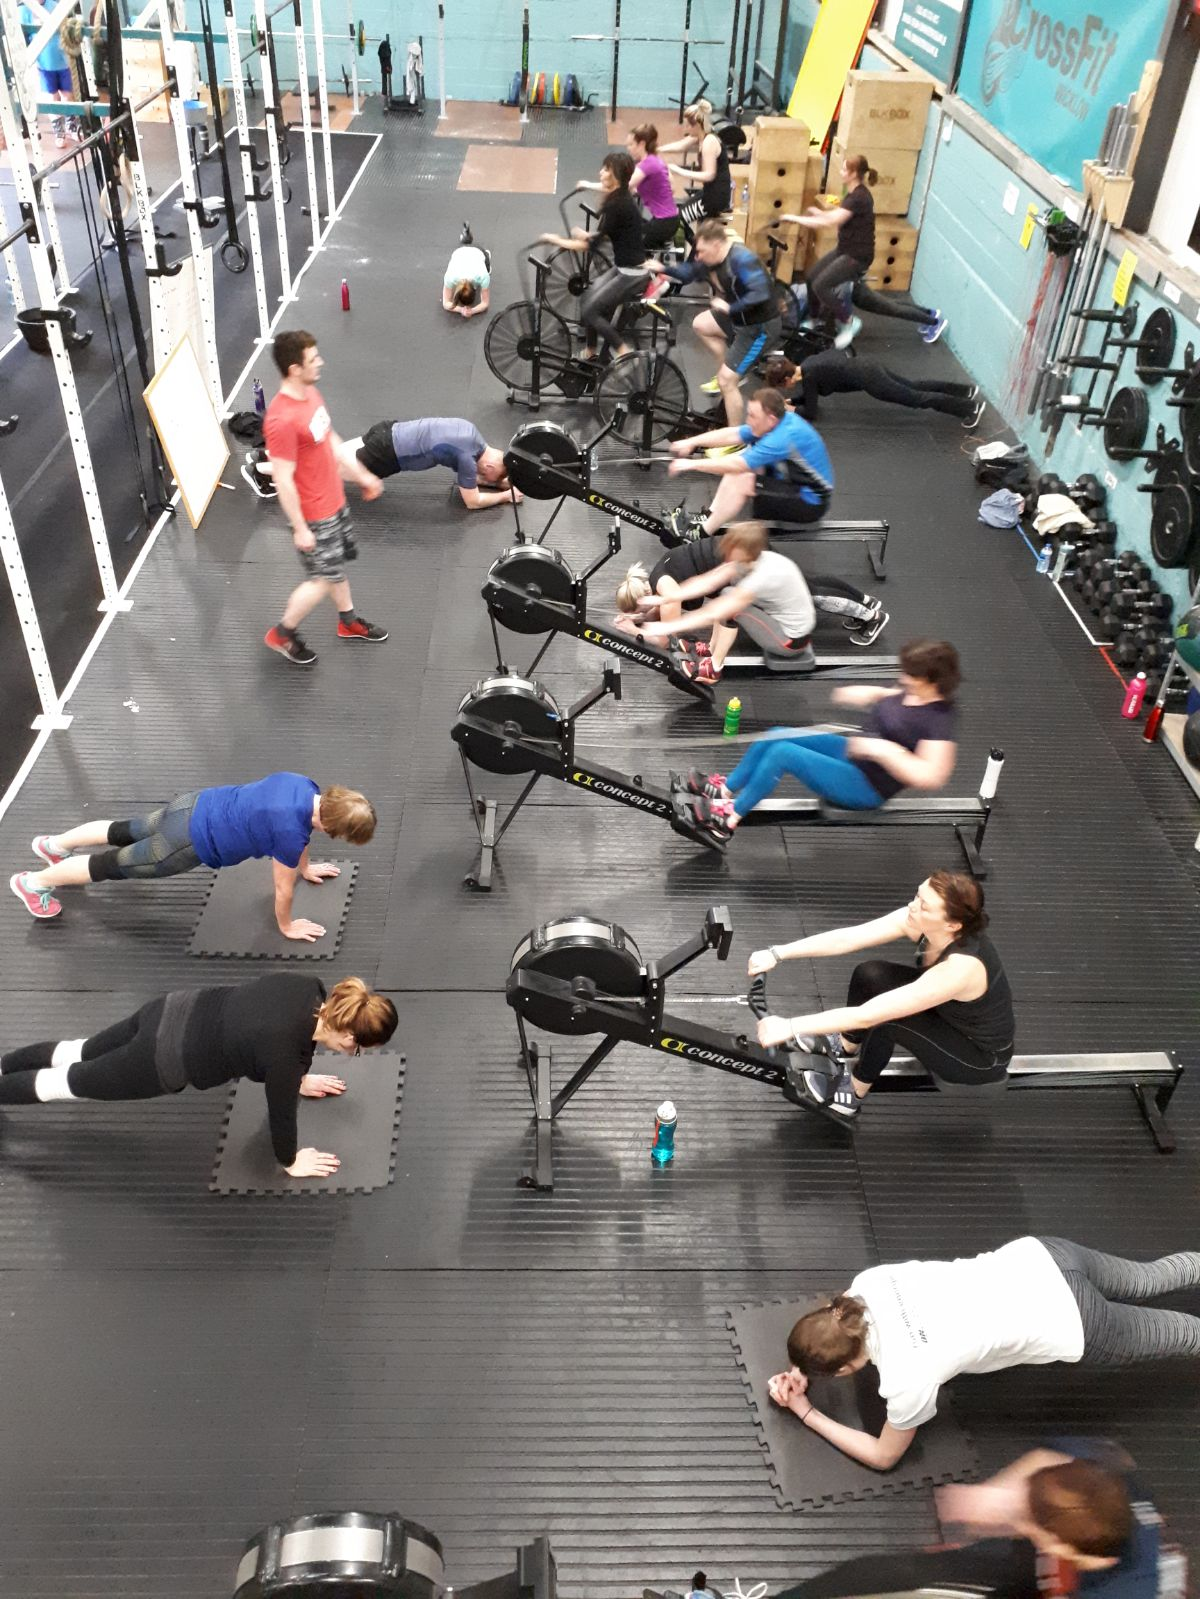 We do HIIT classes, Pump and Sculpt, EMOM and Stretch Sessions - No previous experience required, all welcome, members and non-members. Please book class below. 8 Euro per class for a drop - in.